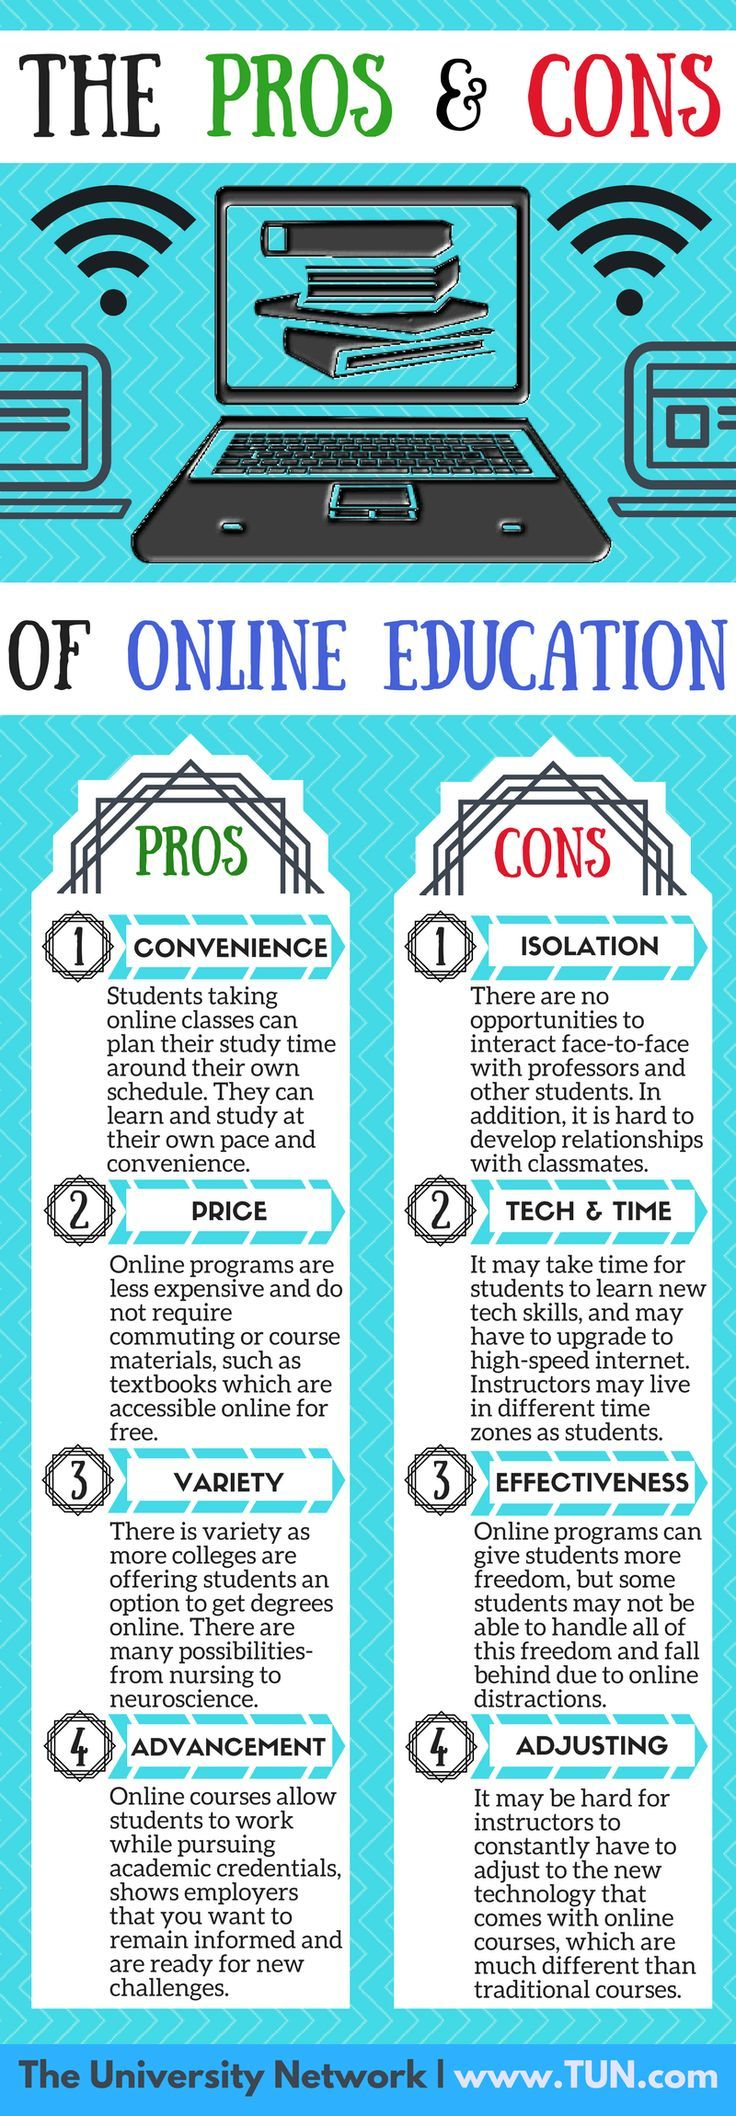 Traditional colleges are facing many challenges, such as budget cuts and higher tuition, so students are searching for alternatives. Online education has become one of the most popular alternatives; almost six million students are currently enrolled in online degree programs. Online education has soared in the past few years for many reasons, but it is not without drawbacks. Here are key advantages and disadvantages of taking online classes.